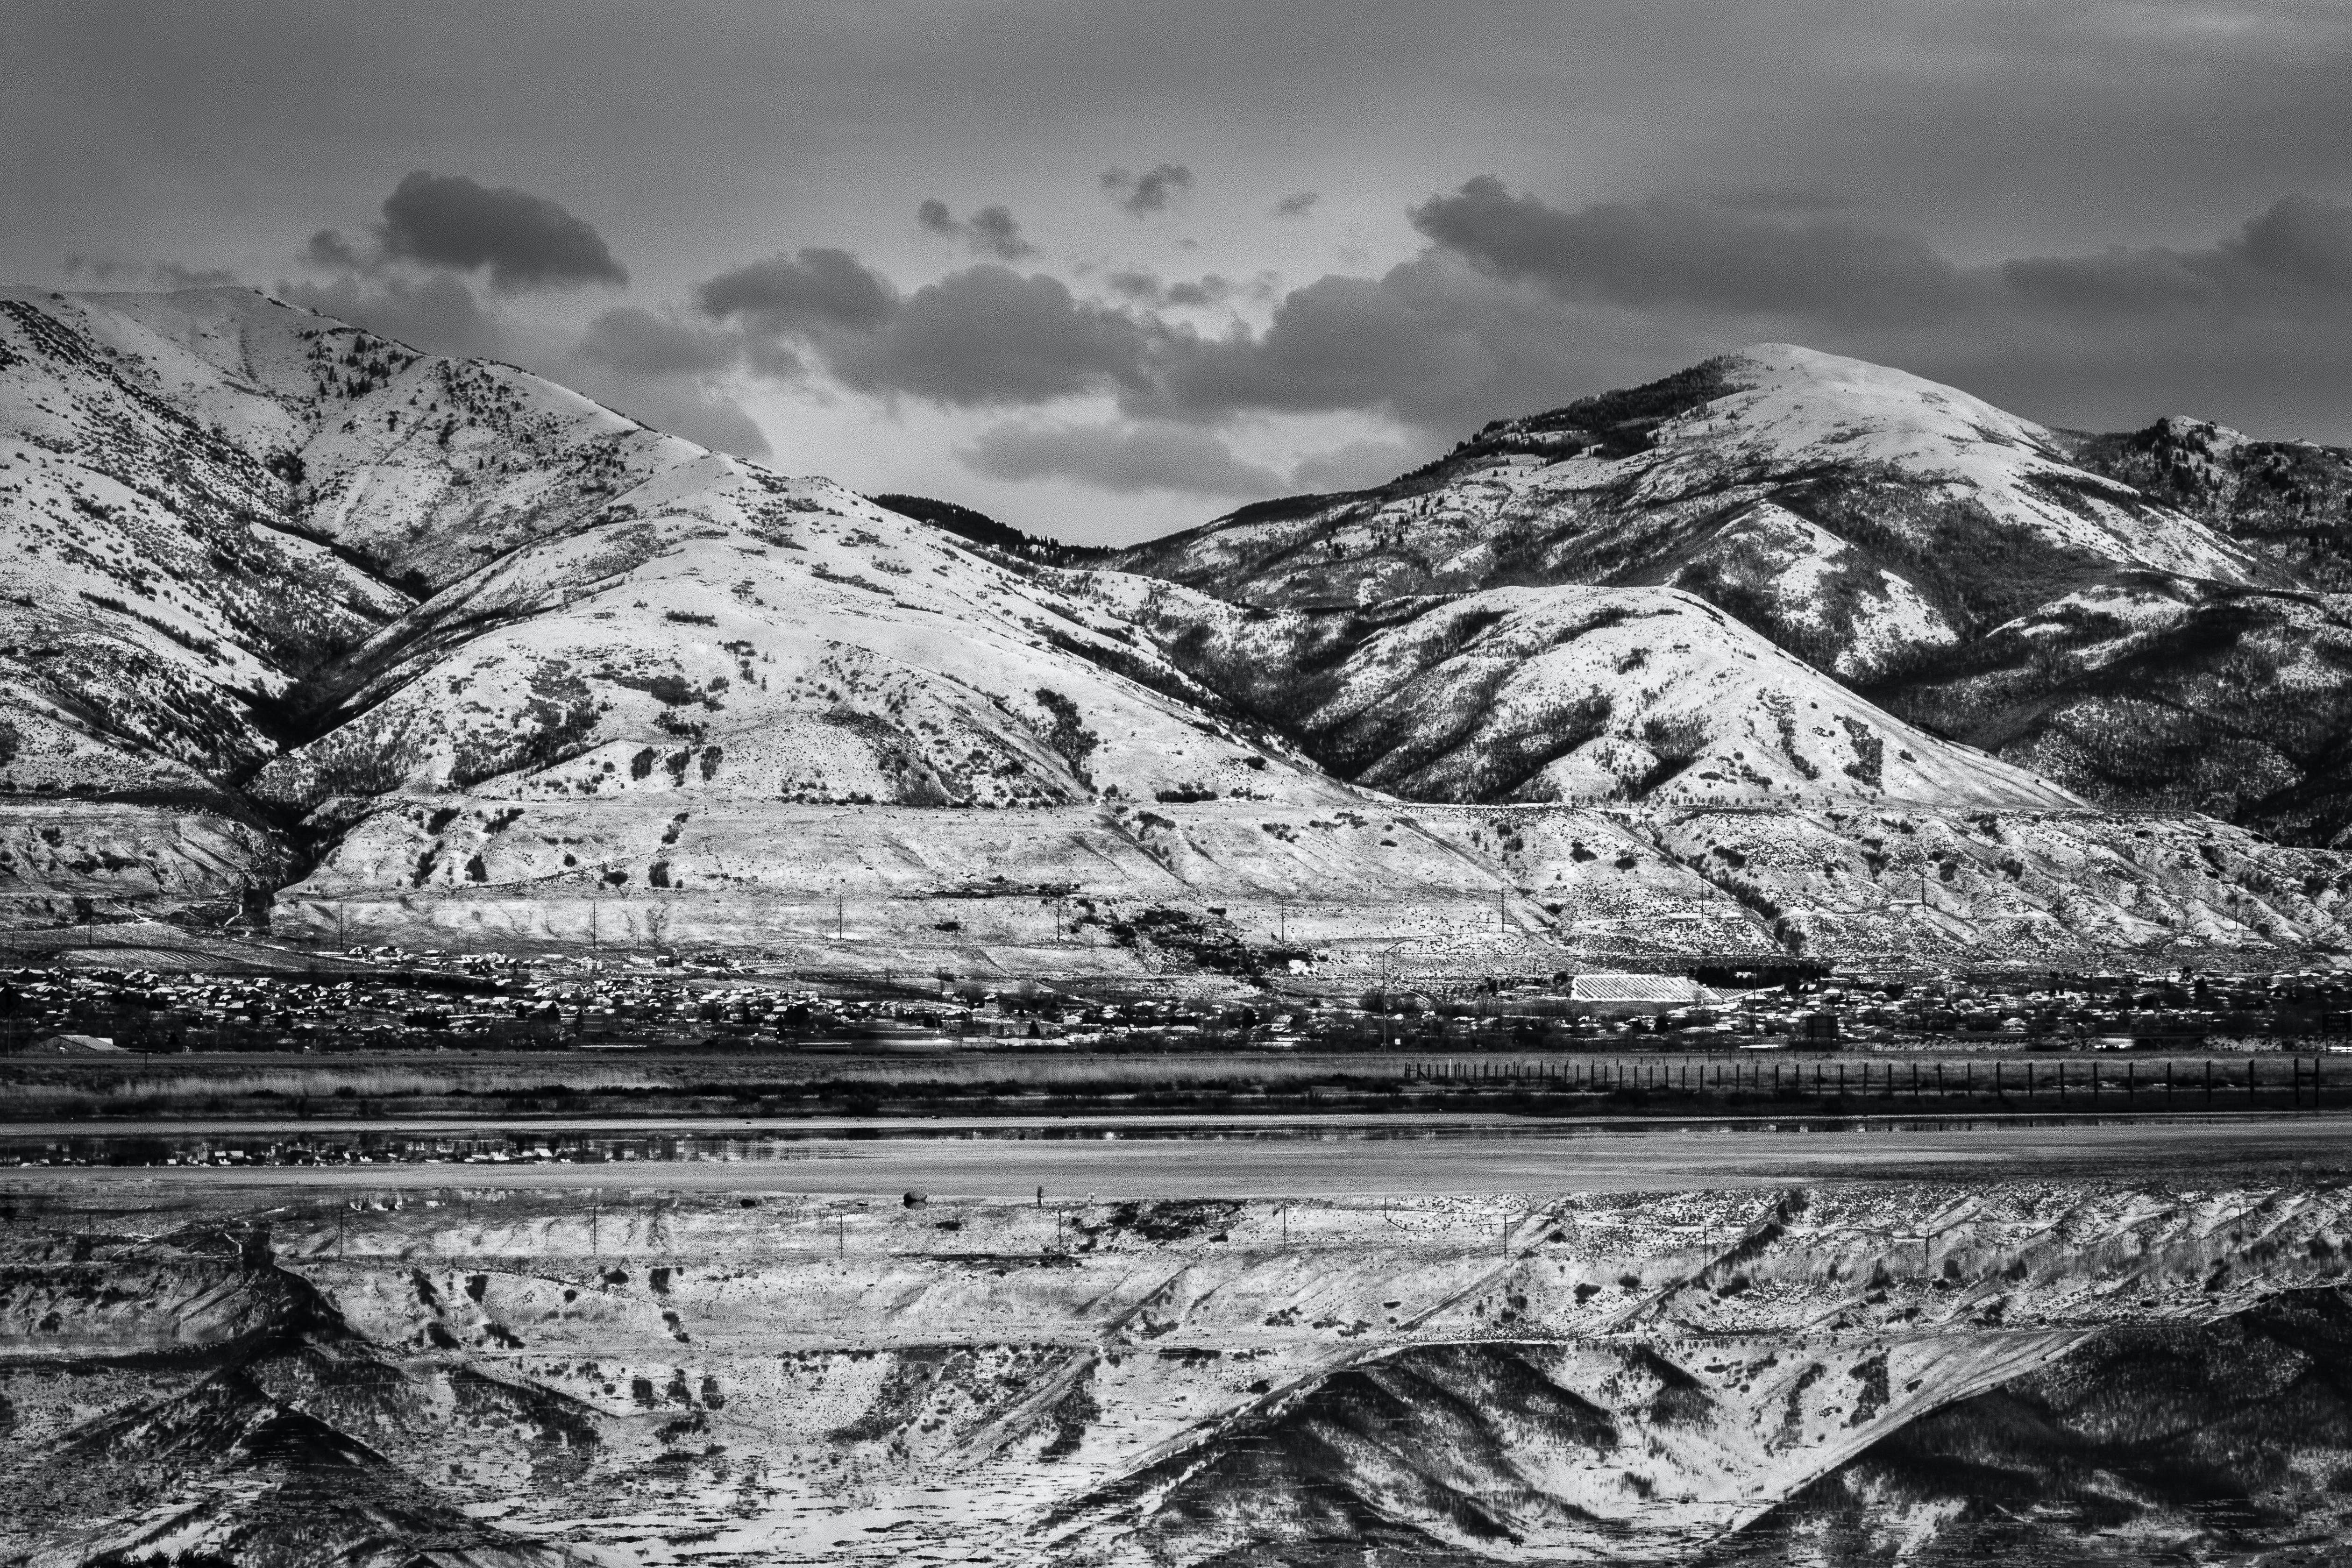 Grayscale Photo of a Landscape View of Mountains